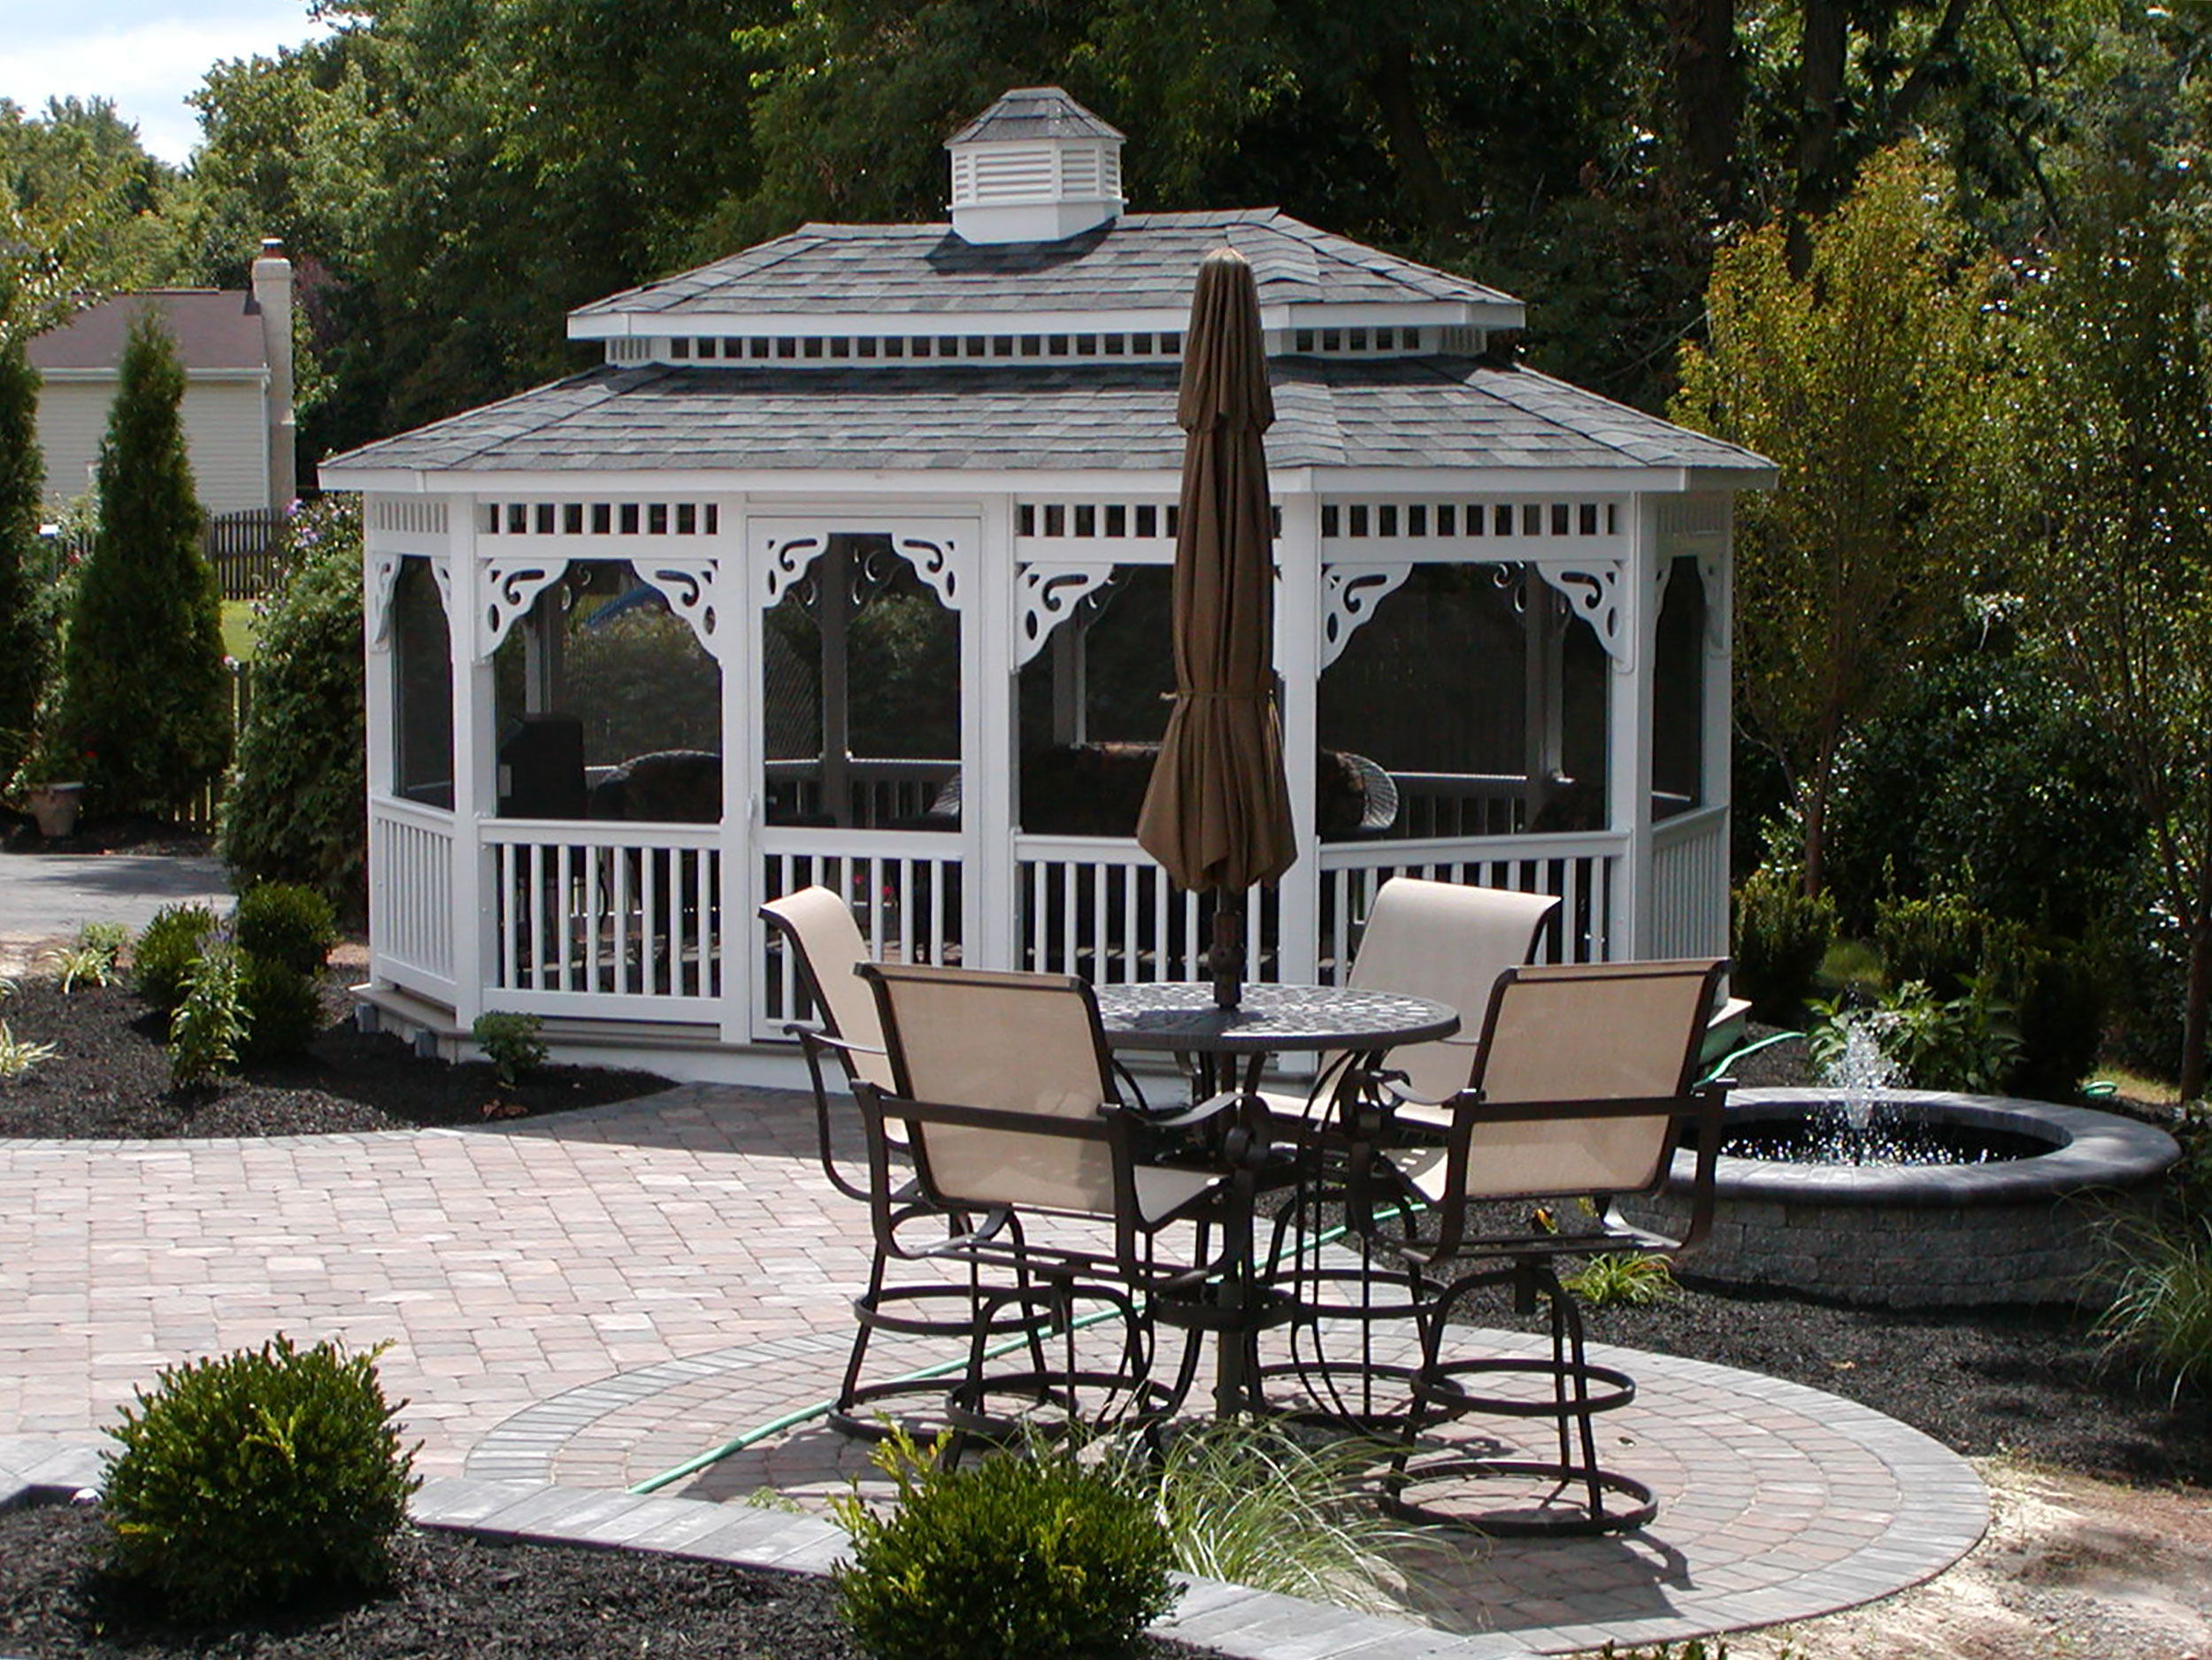 Bistro Area with Gazebo